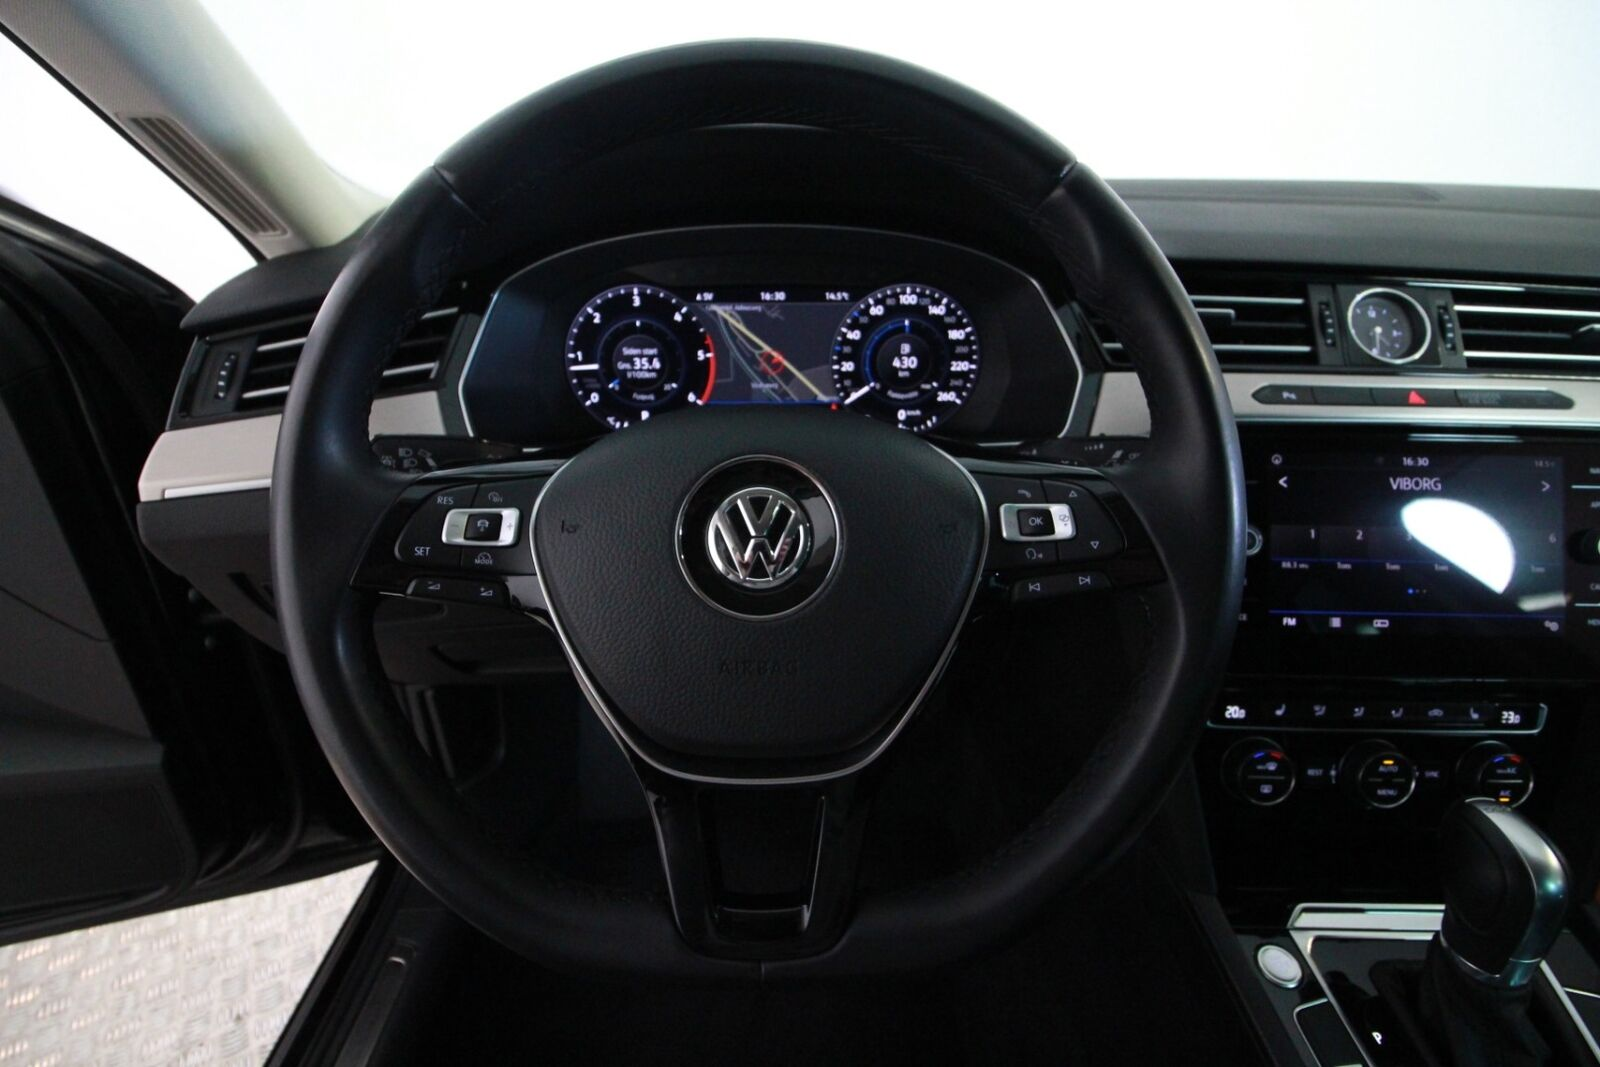 VW Passat TDi 150 Highline DSG